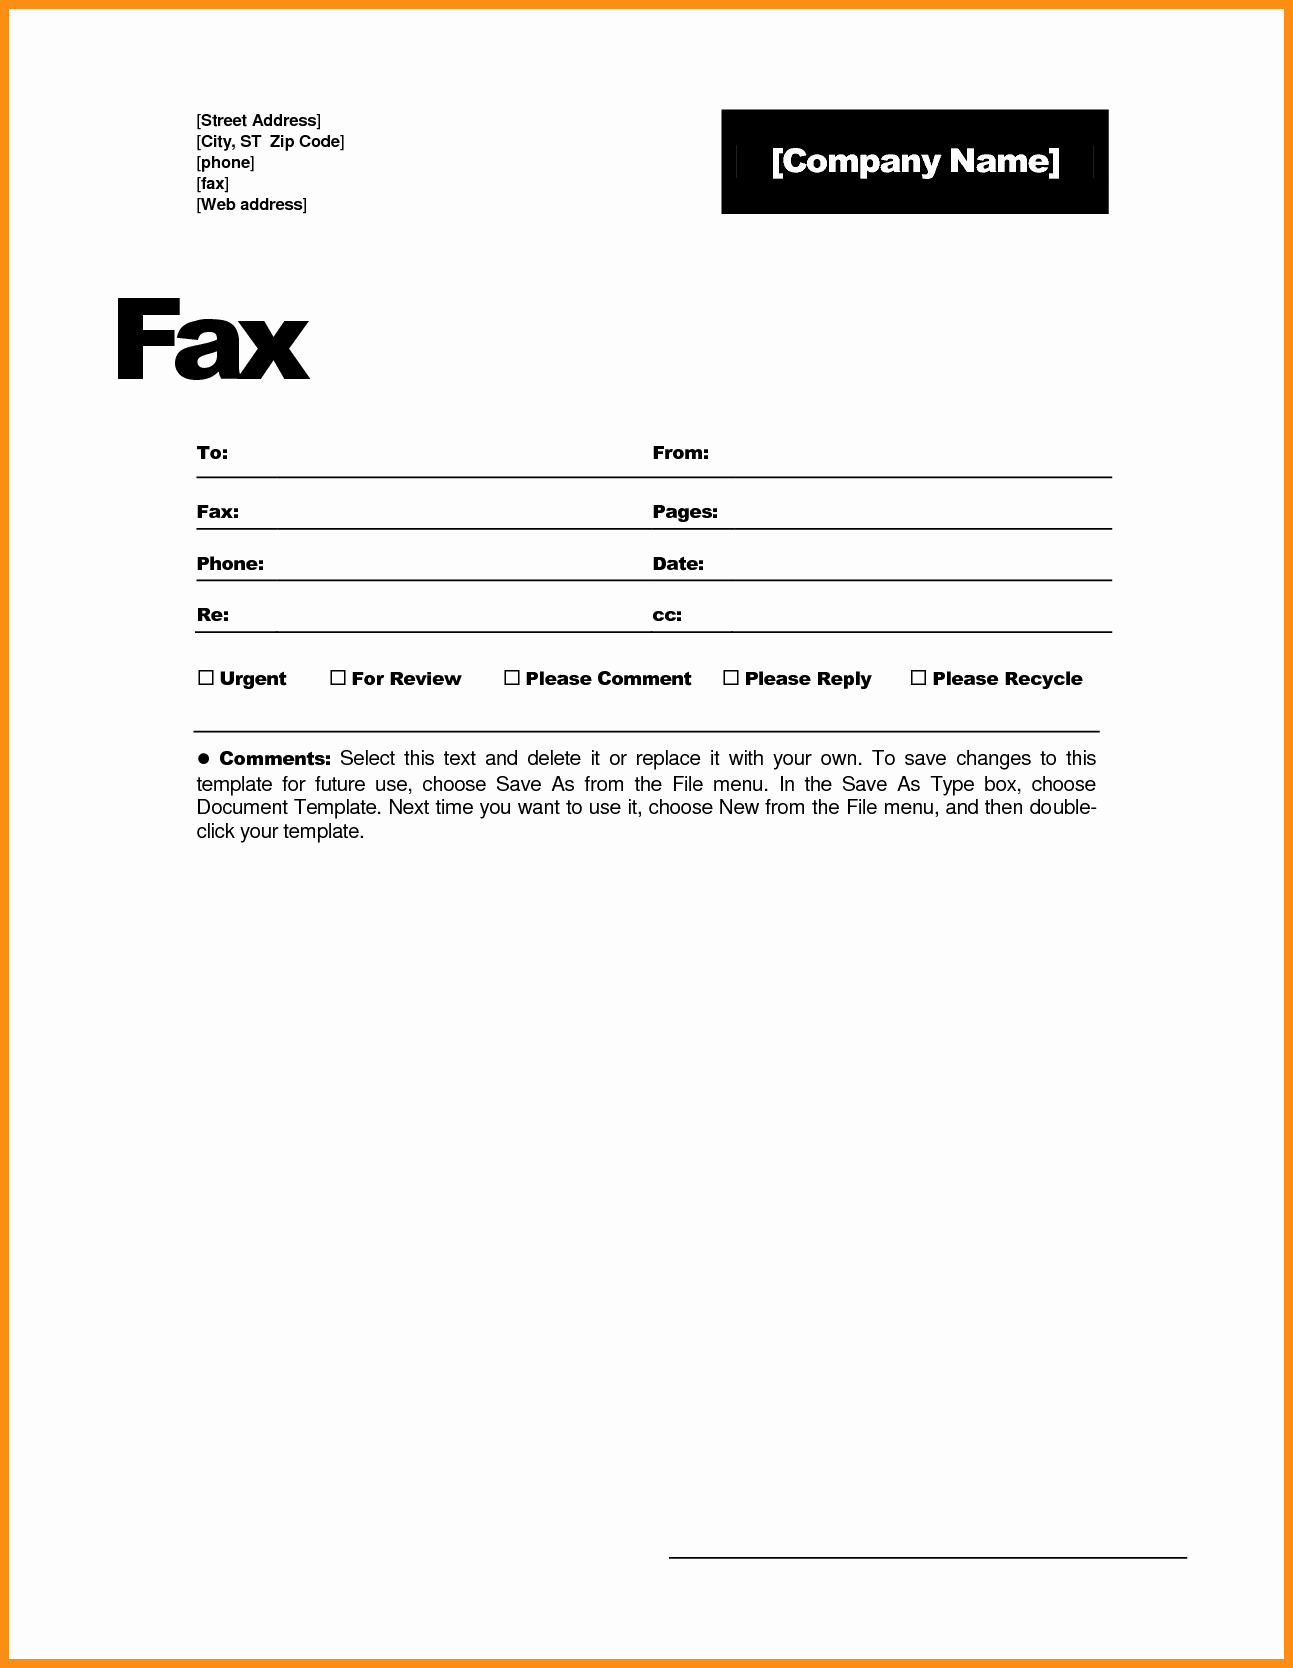 Fax Cover Sheet Printable Free New 6 Free Fax Cover Sheet Template Word